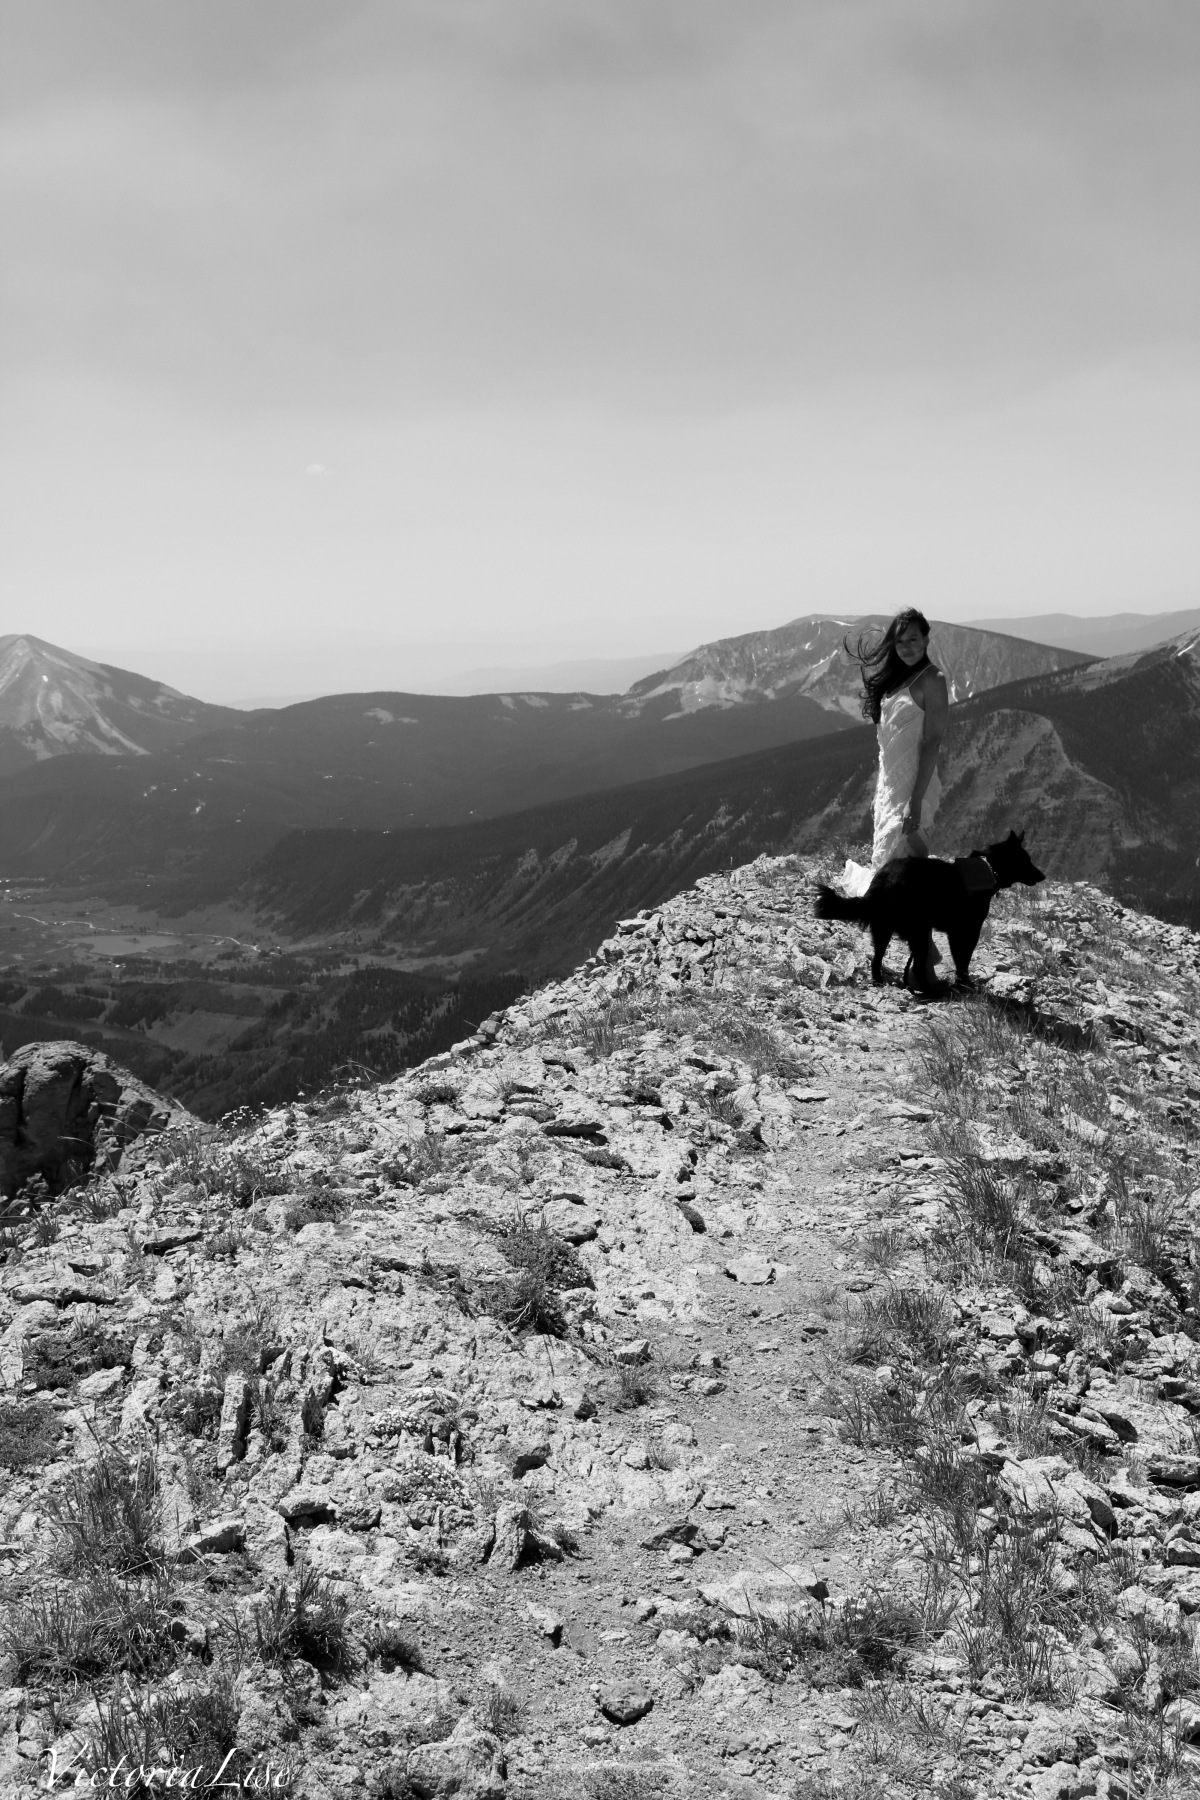 Victoria Lise on summit of gothic mountain with dog, Styx in black and white.